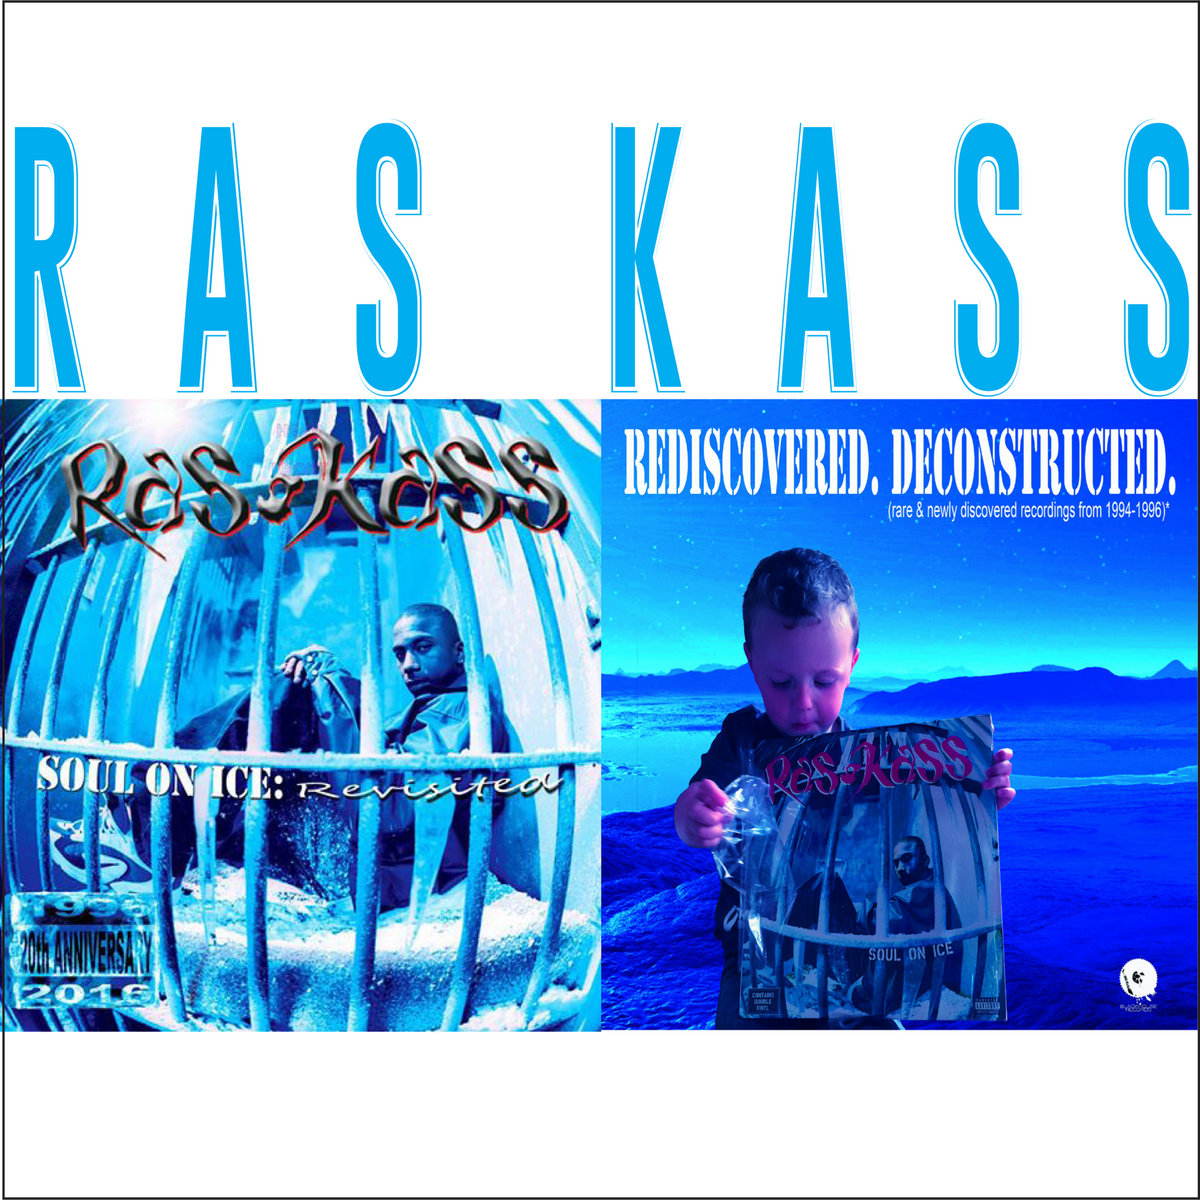 Soul On Ice: revisited X (Bonus) Rediscovered  Deconstructed  | Ras Kass